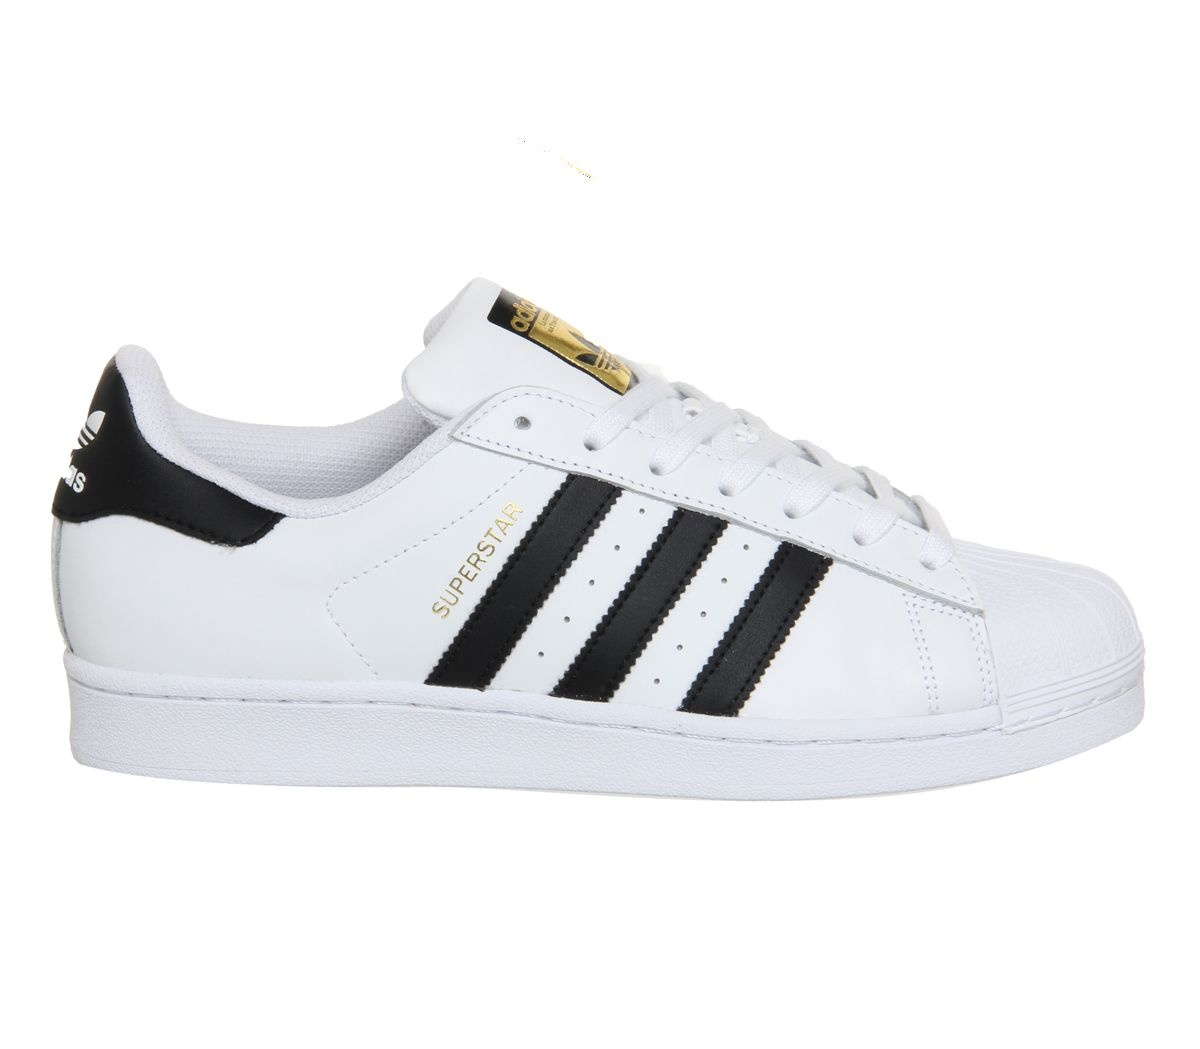 Mens-Adidas-Superstar-1-White-Black-Foundation-Trainers-Shoes thumbnail 4